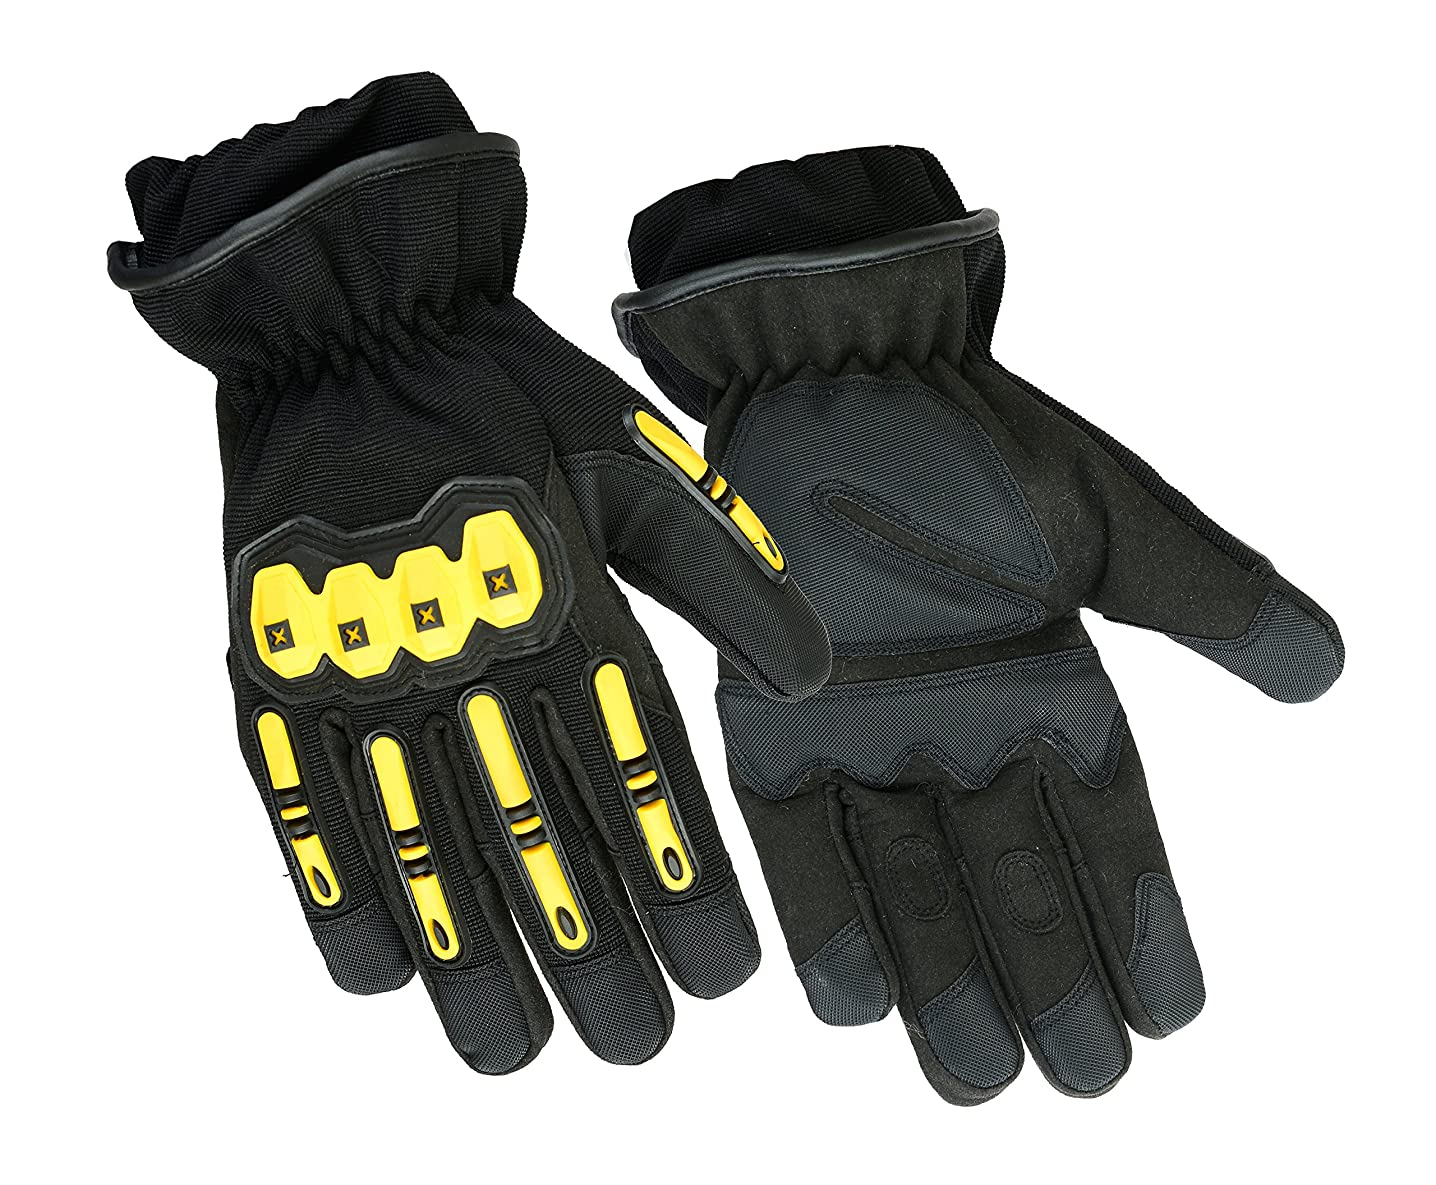 Precinct One Fire Resistant Leather Extrication Hard Knuckle Protective Glove with Kevlar Liner for Police and Firefighters